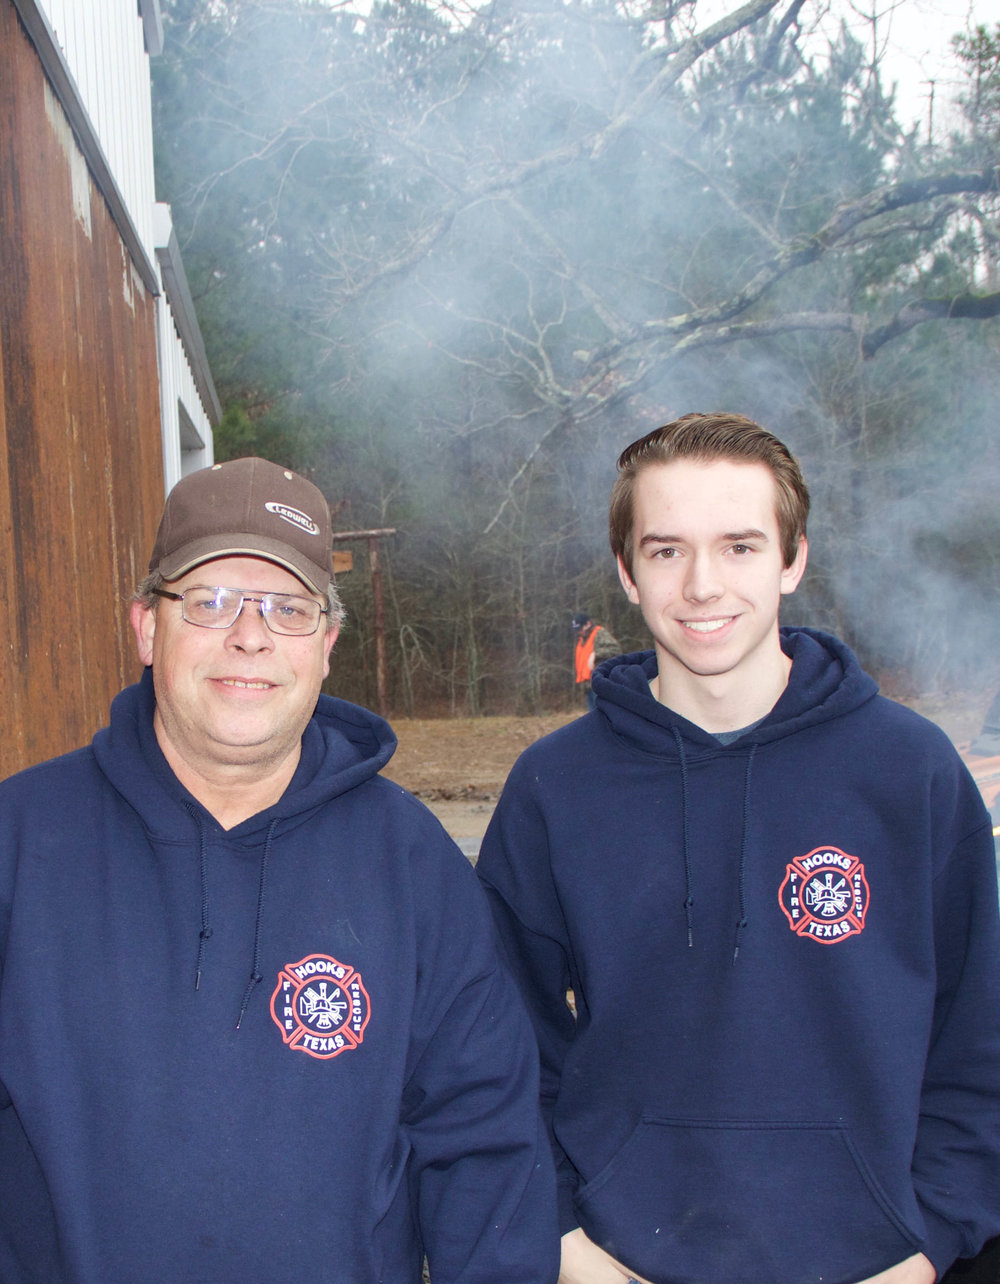 Hooks Volunteer Firemen Jay Farris and Logan Knight